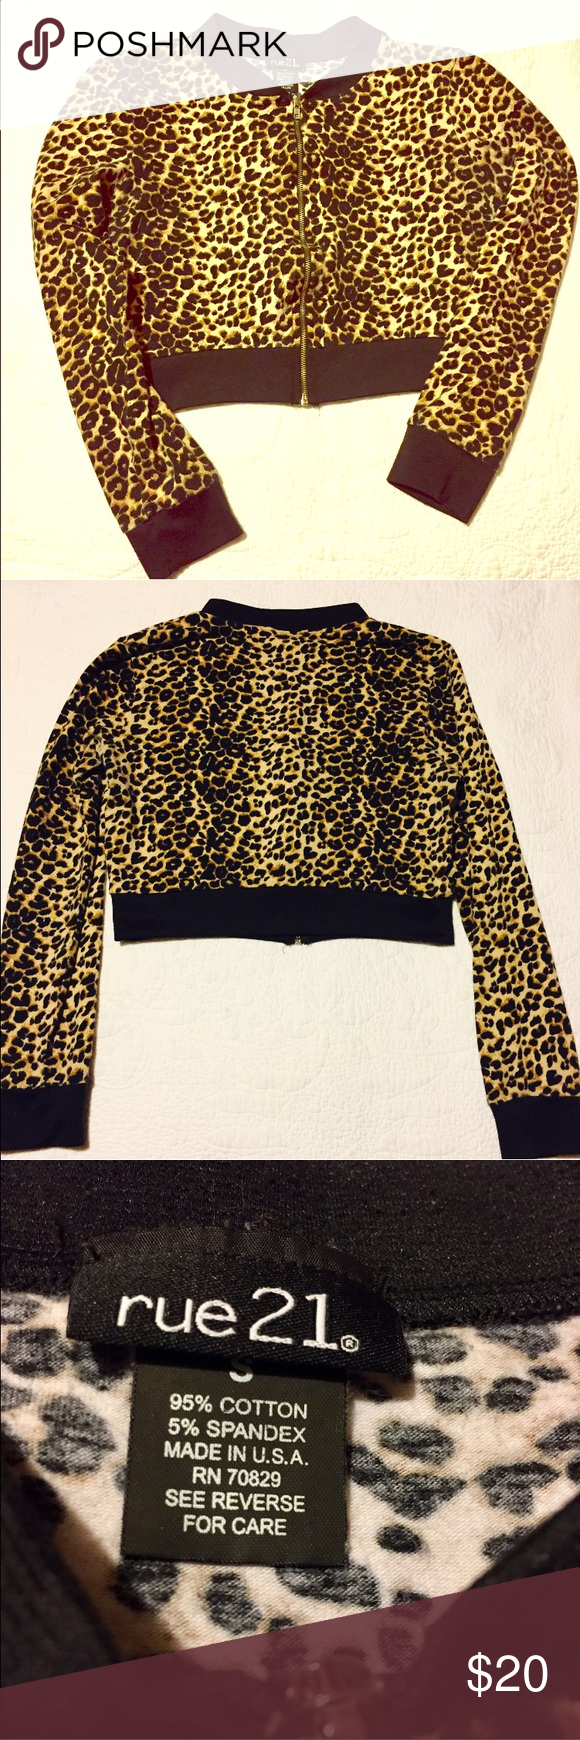 Cropped long sleeved zip down Cheetah top Cheetah print, gold zip up crop long sleeved top. Super cute, size small, MINT CONDITION! Rue 21 Tops Crop Tops